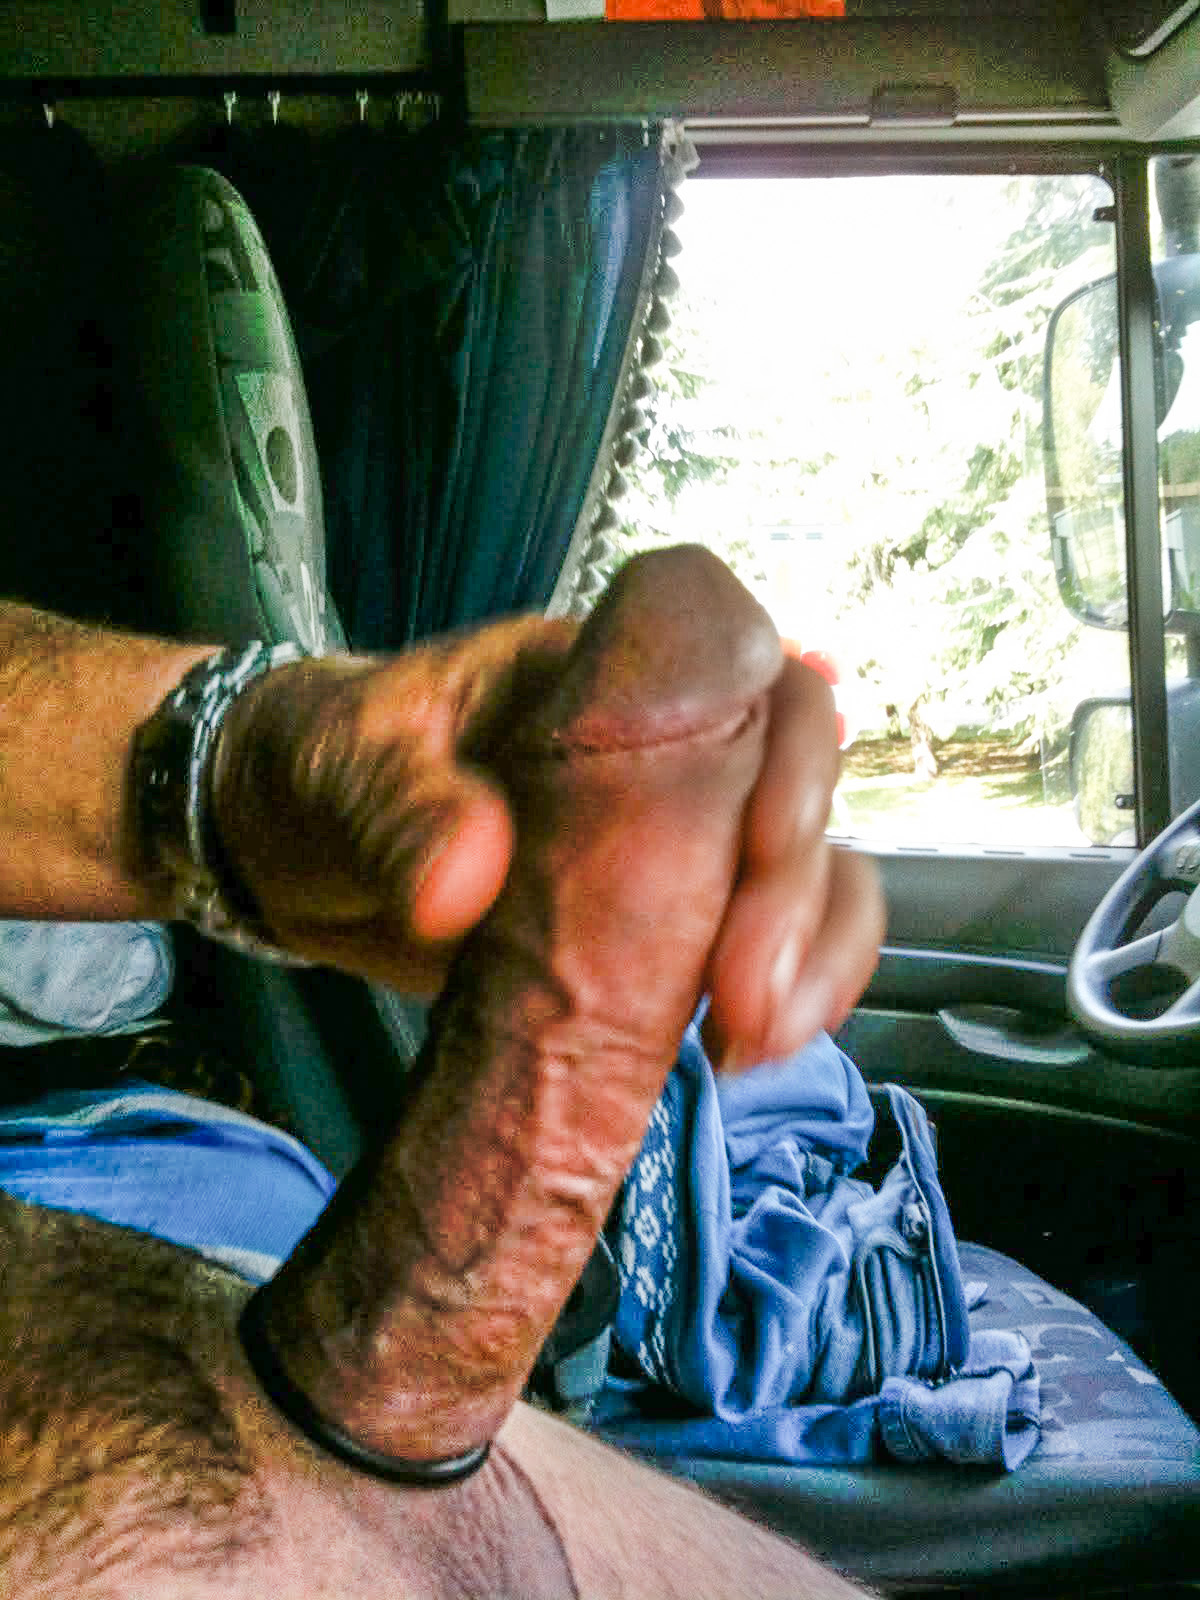 Big trucker dick